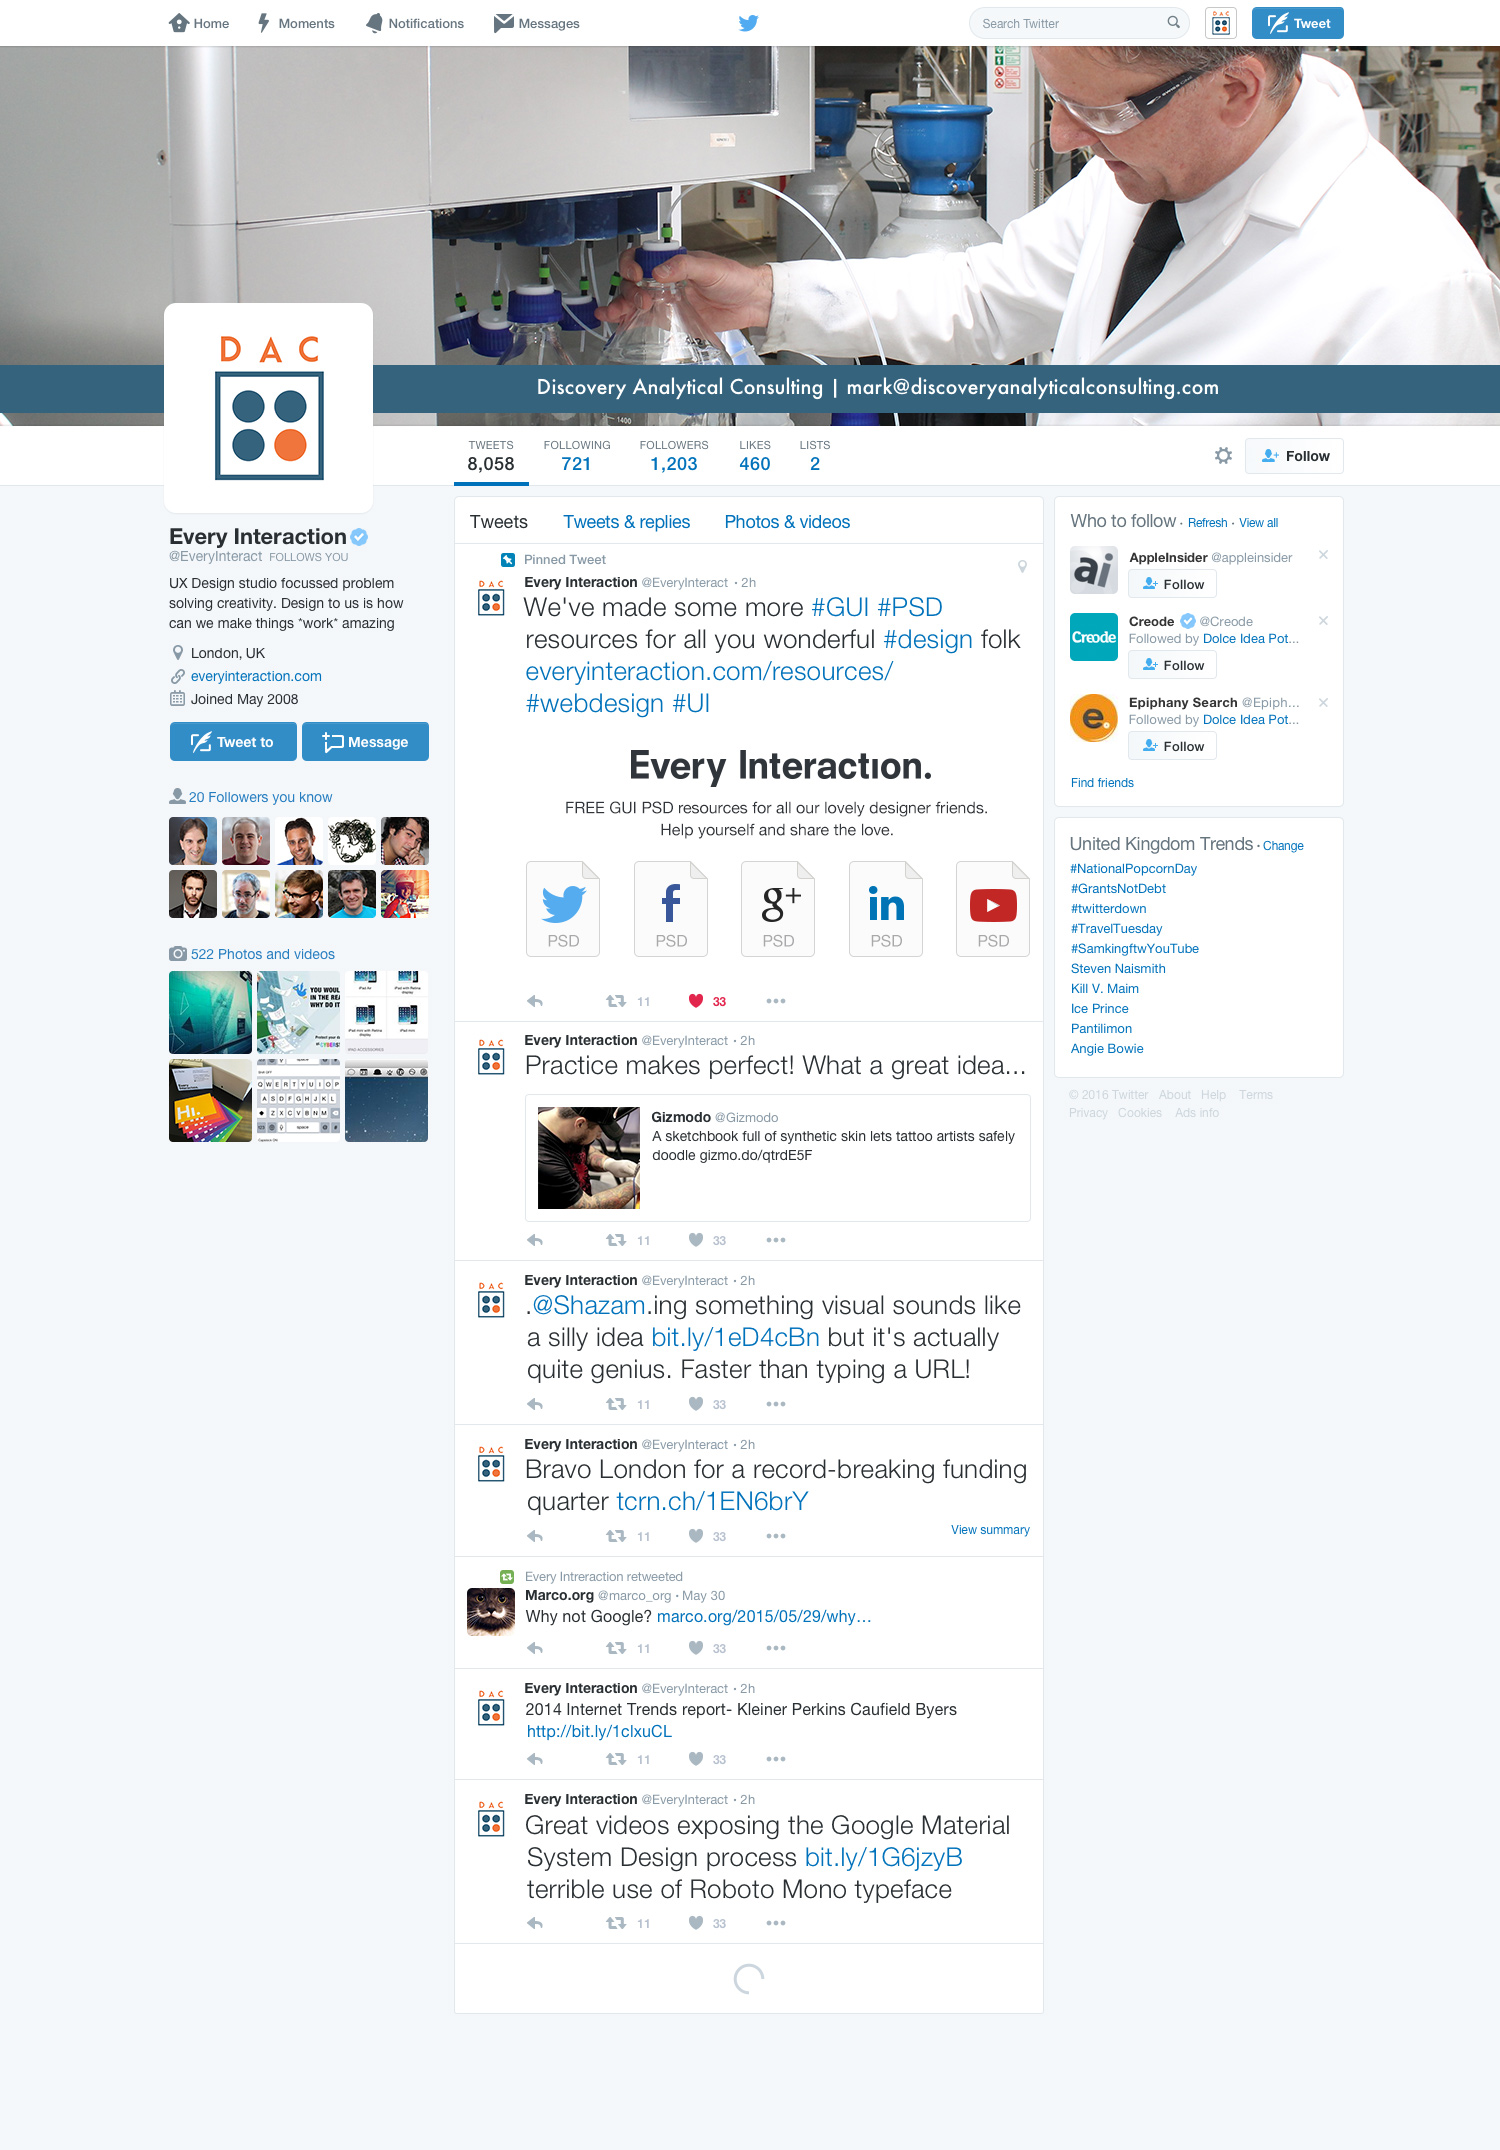 Discovery Analytical Consulting - Twitter Profile InSitu.jpg